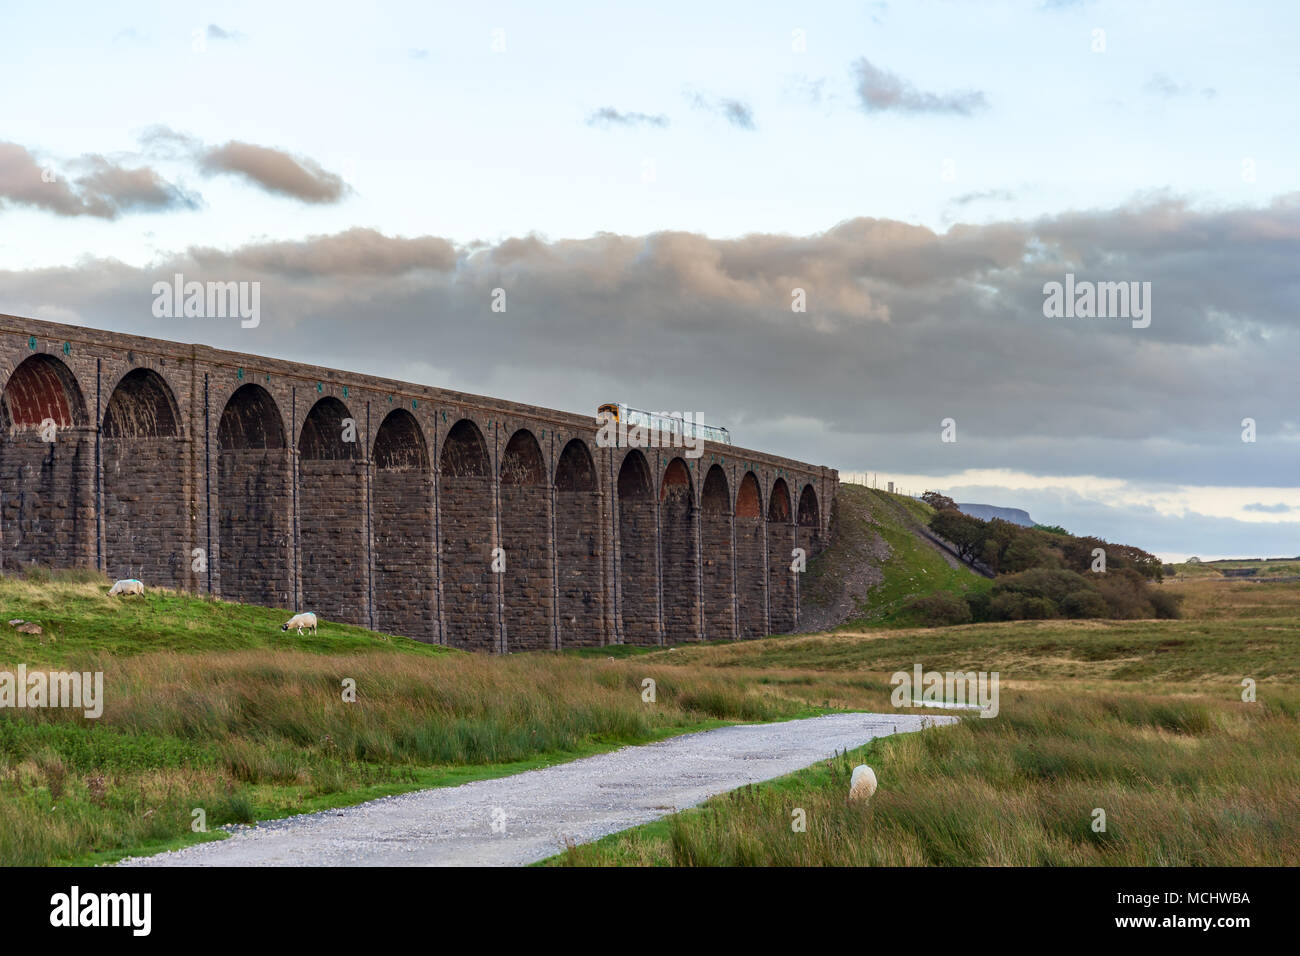 Near Ingleton, North Yorkshire, England, UK - September 11, 2016: A train passing the Ribblehead Viaduct on the Settle-Carlisle Railway - Stock Image